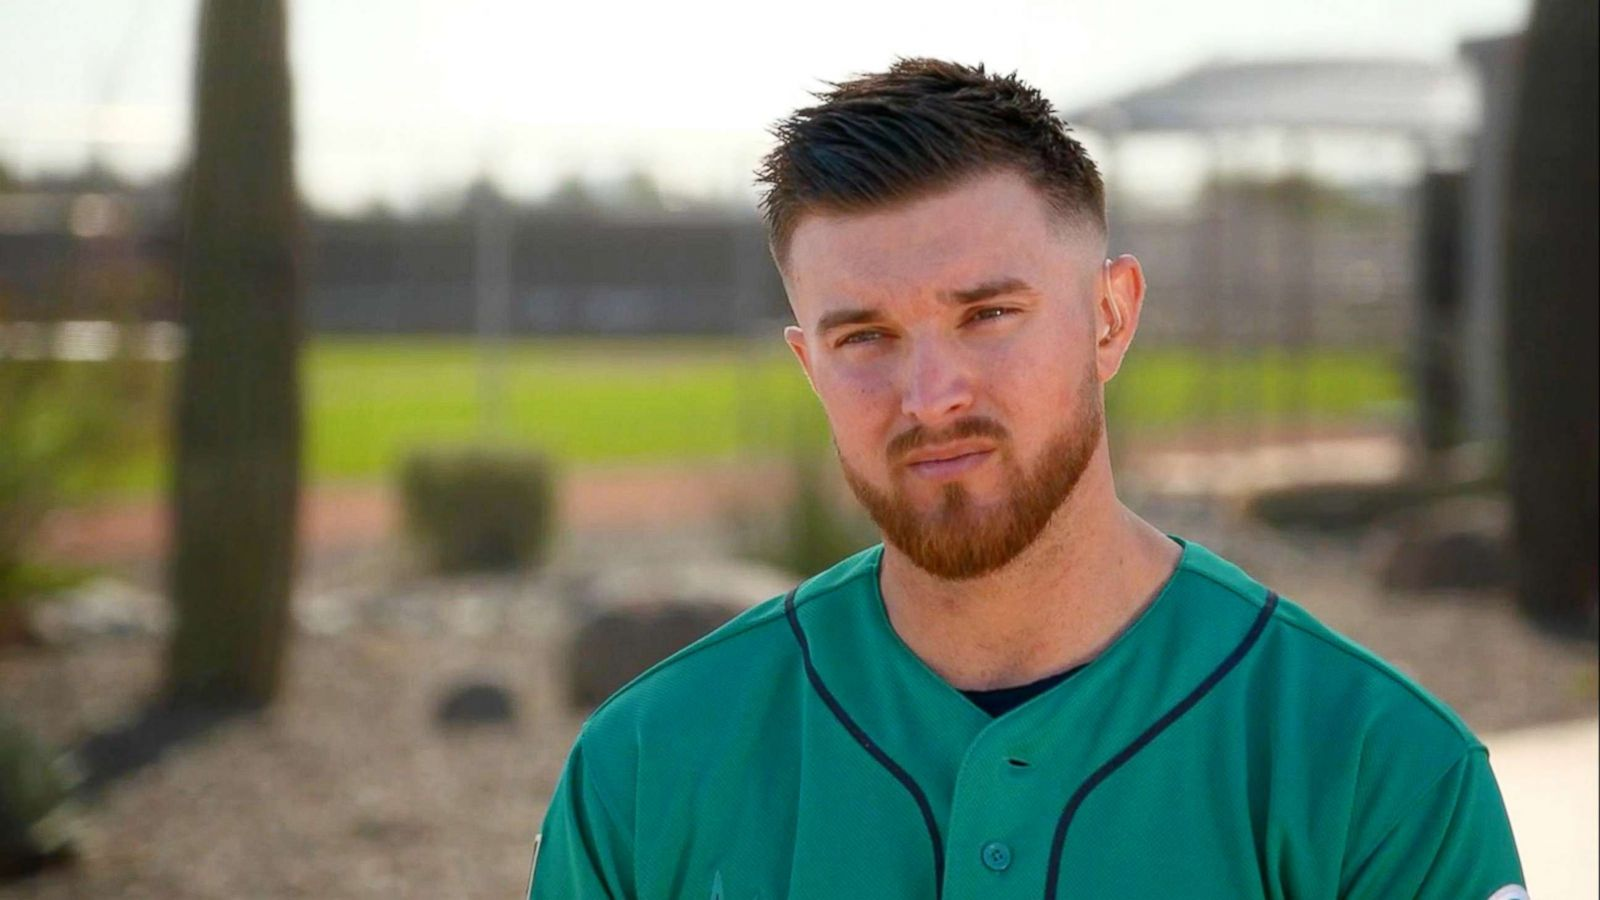 Mlb Star Opens Up About His Eating Disorder Struggles And Overcoming